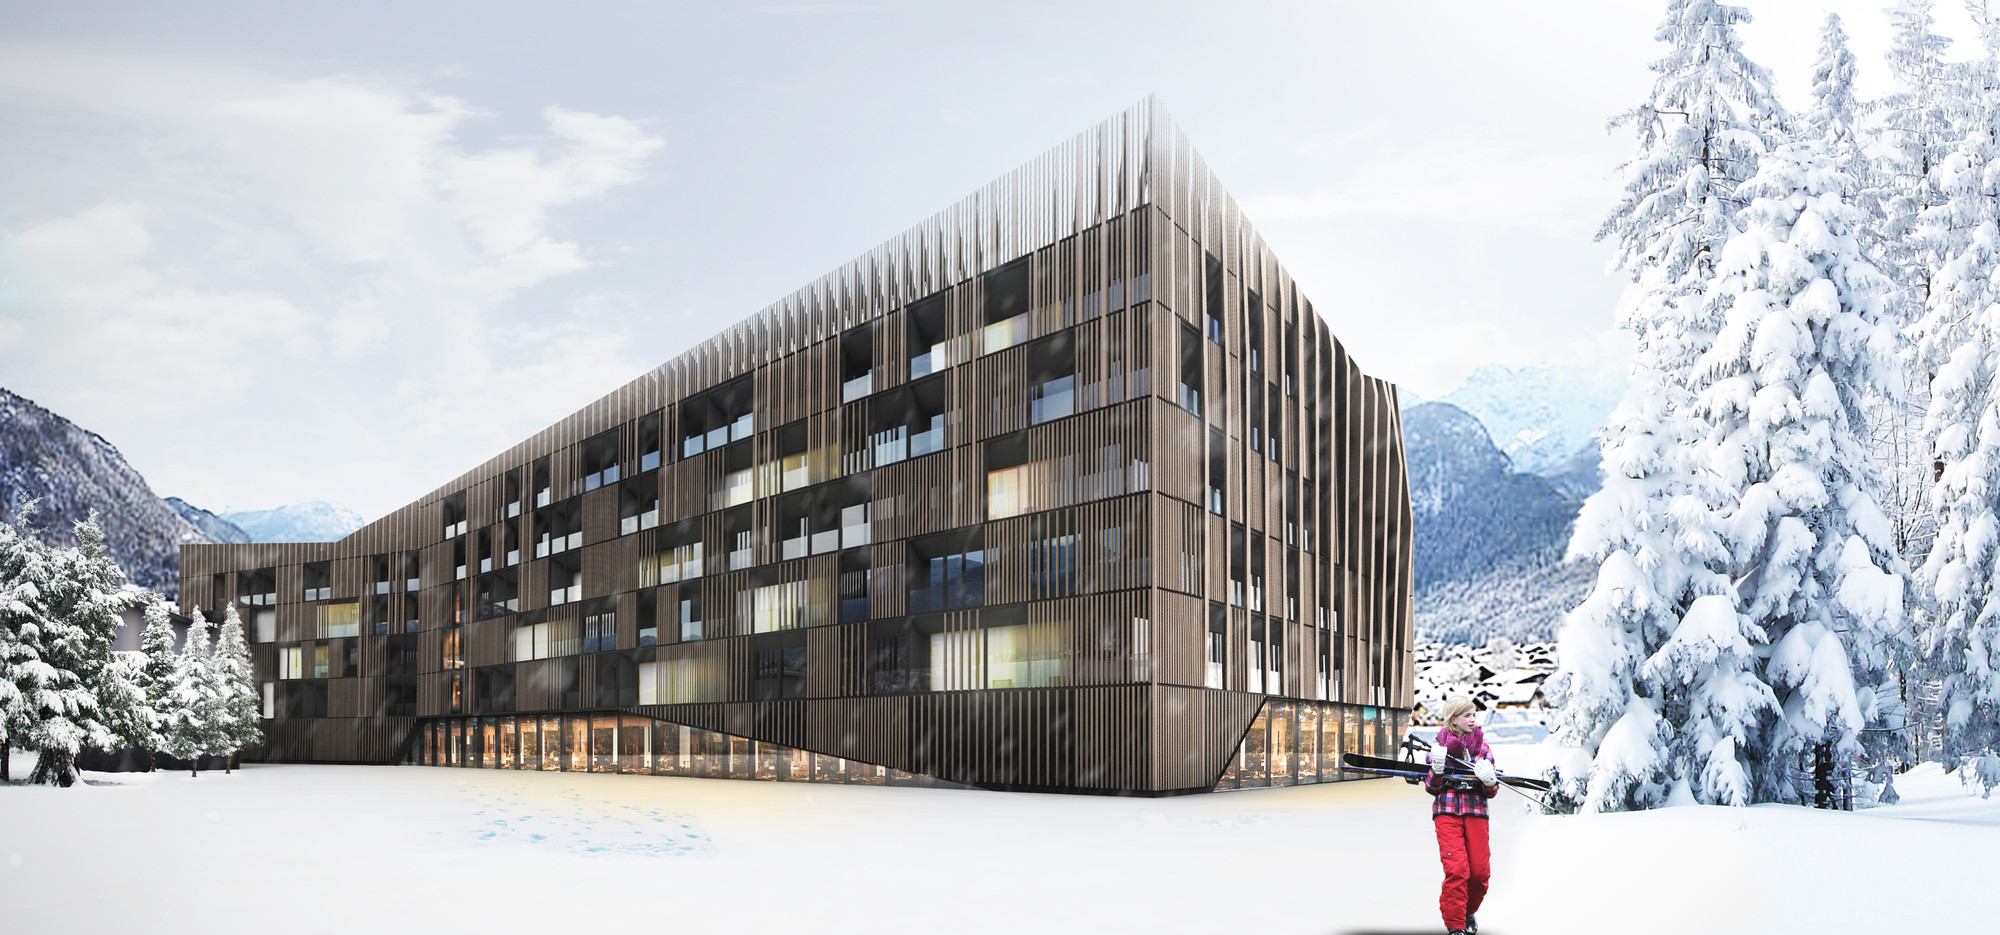 GRAFT Wins Competition to Design Resort in Lofer , Hotel. Image Courtesy of GRAFT